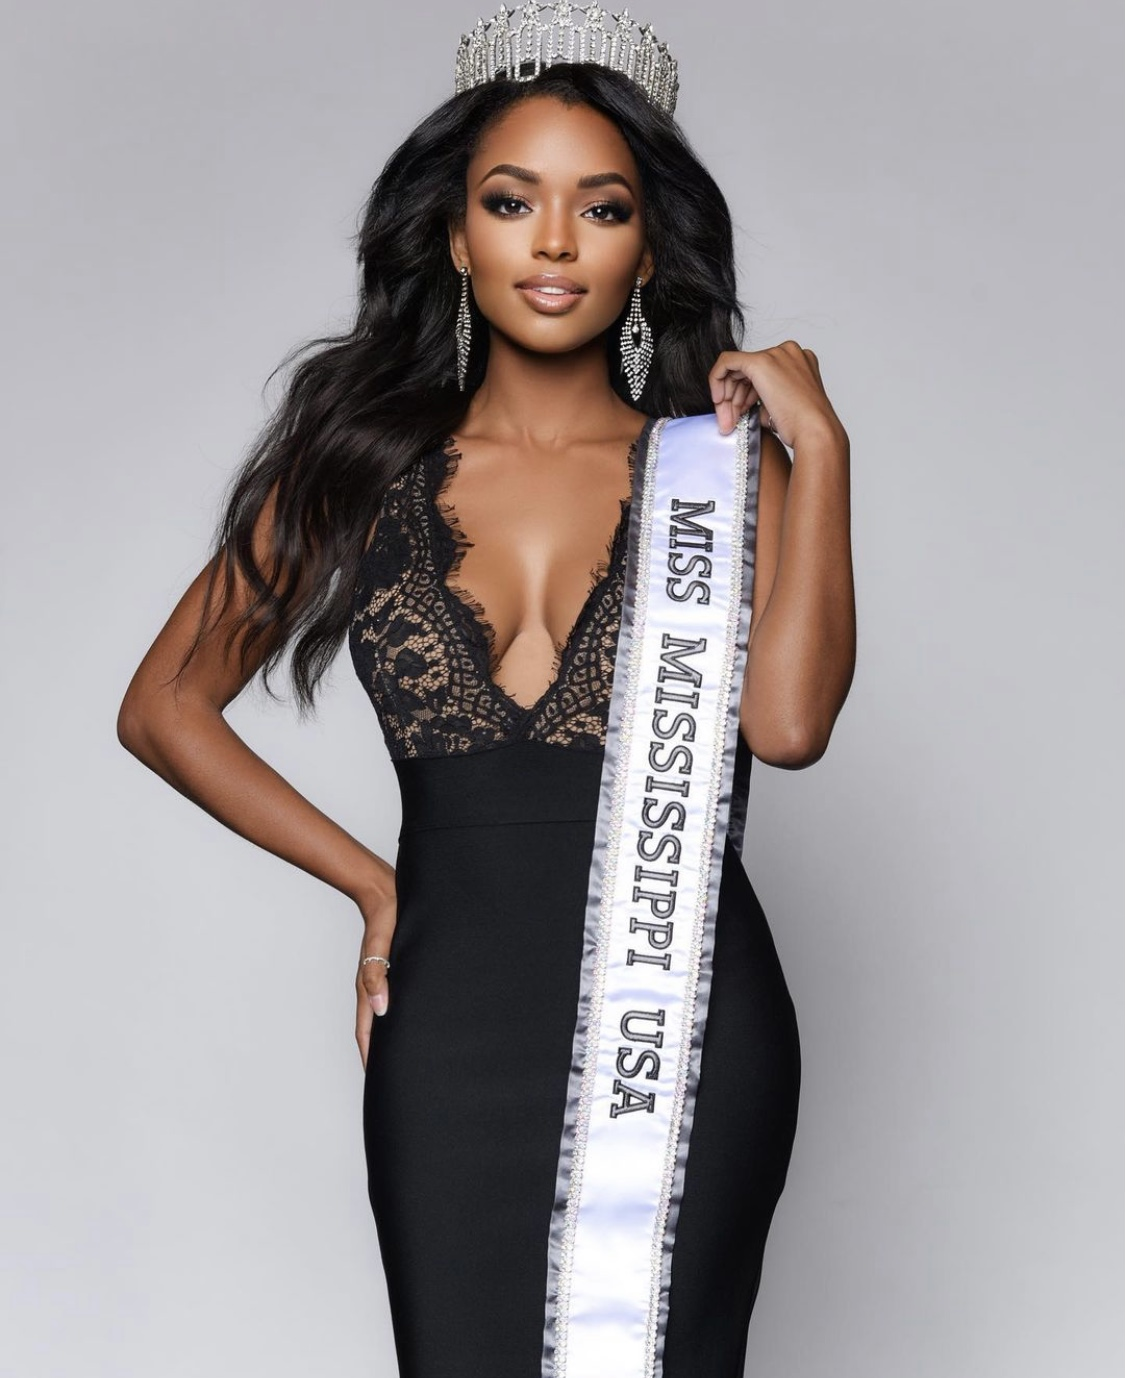 Asya-Branch-Miss-USA-2020